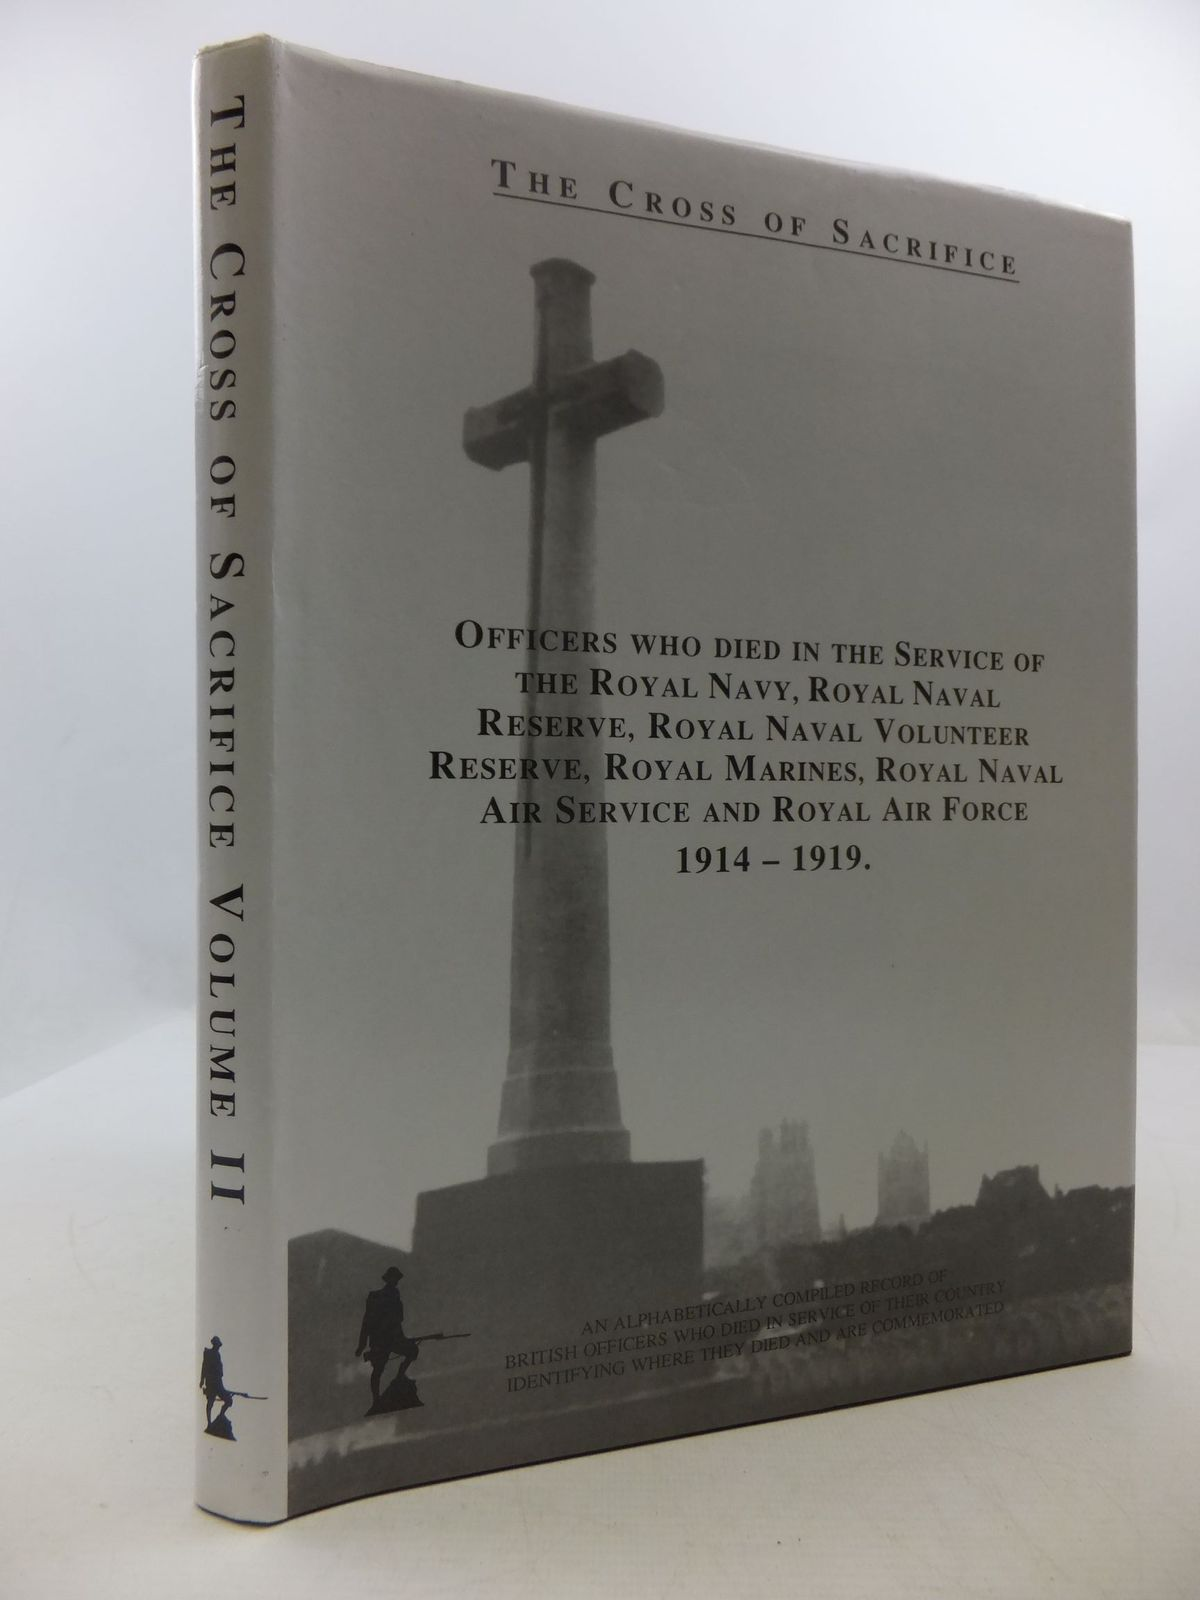 Photo of THE CROSS OF SACRIFICE VOLUME II written by Jarvis, S.D. Jarvis, D.B. published by Roberts (STOCK CODE: 1708690)  for sale by Stella & Rose's Books